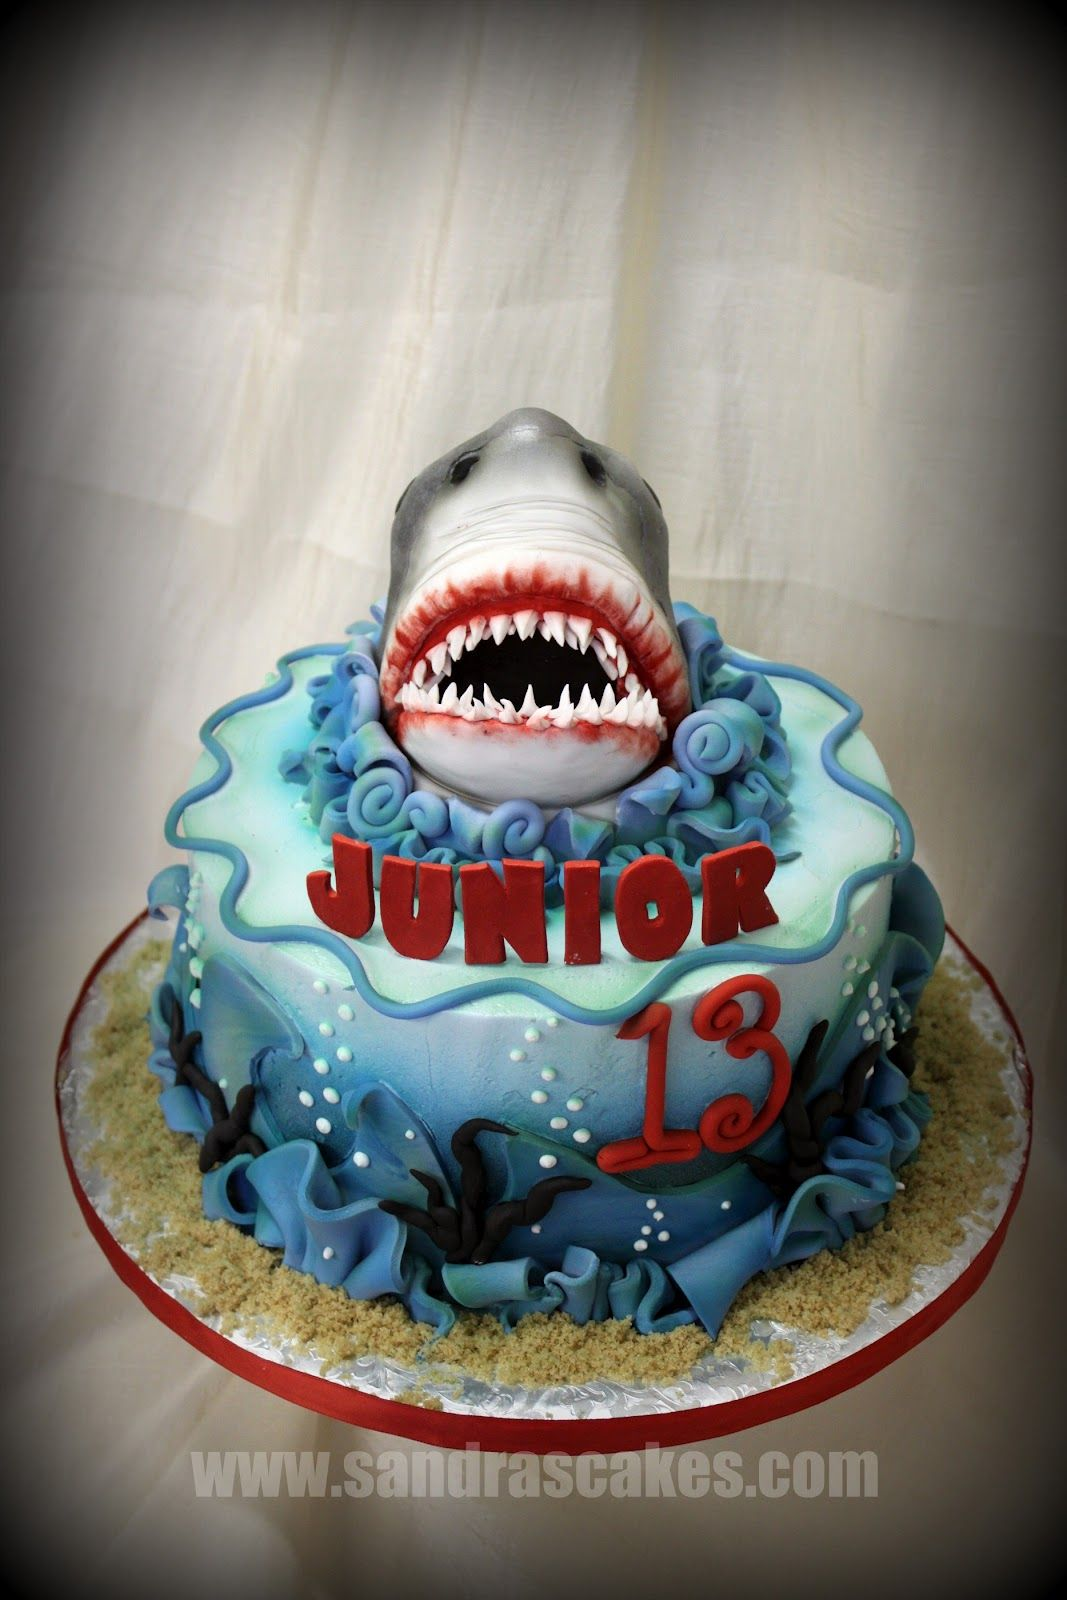 Great White Shark Cake | OUR FABULOUS LATEST CREATIONS